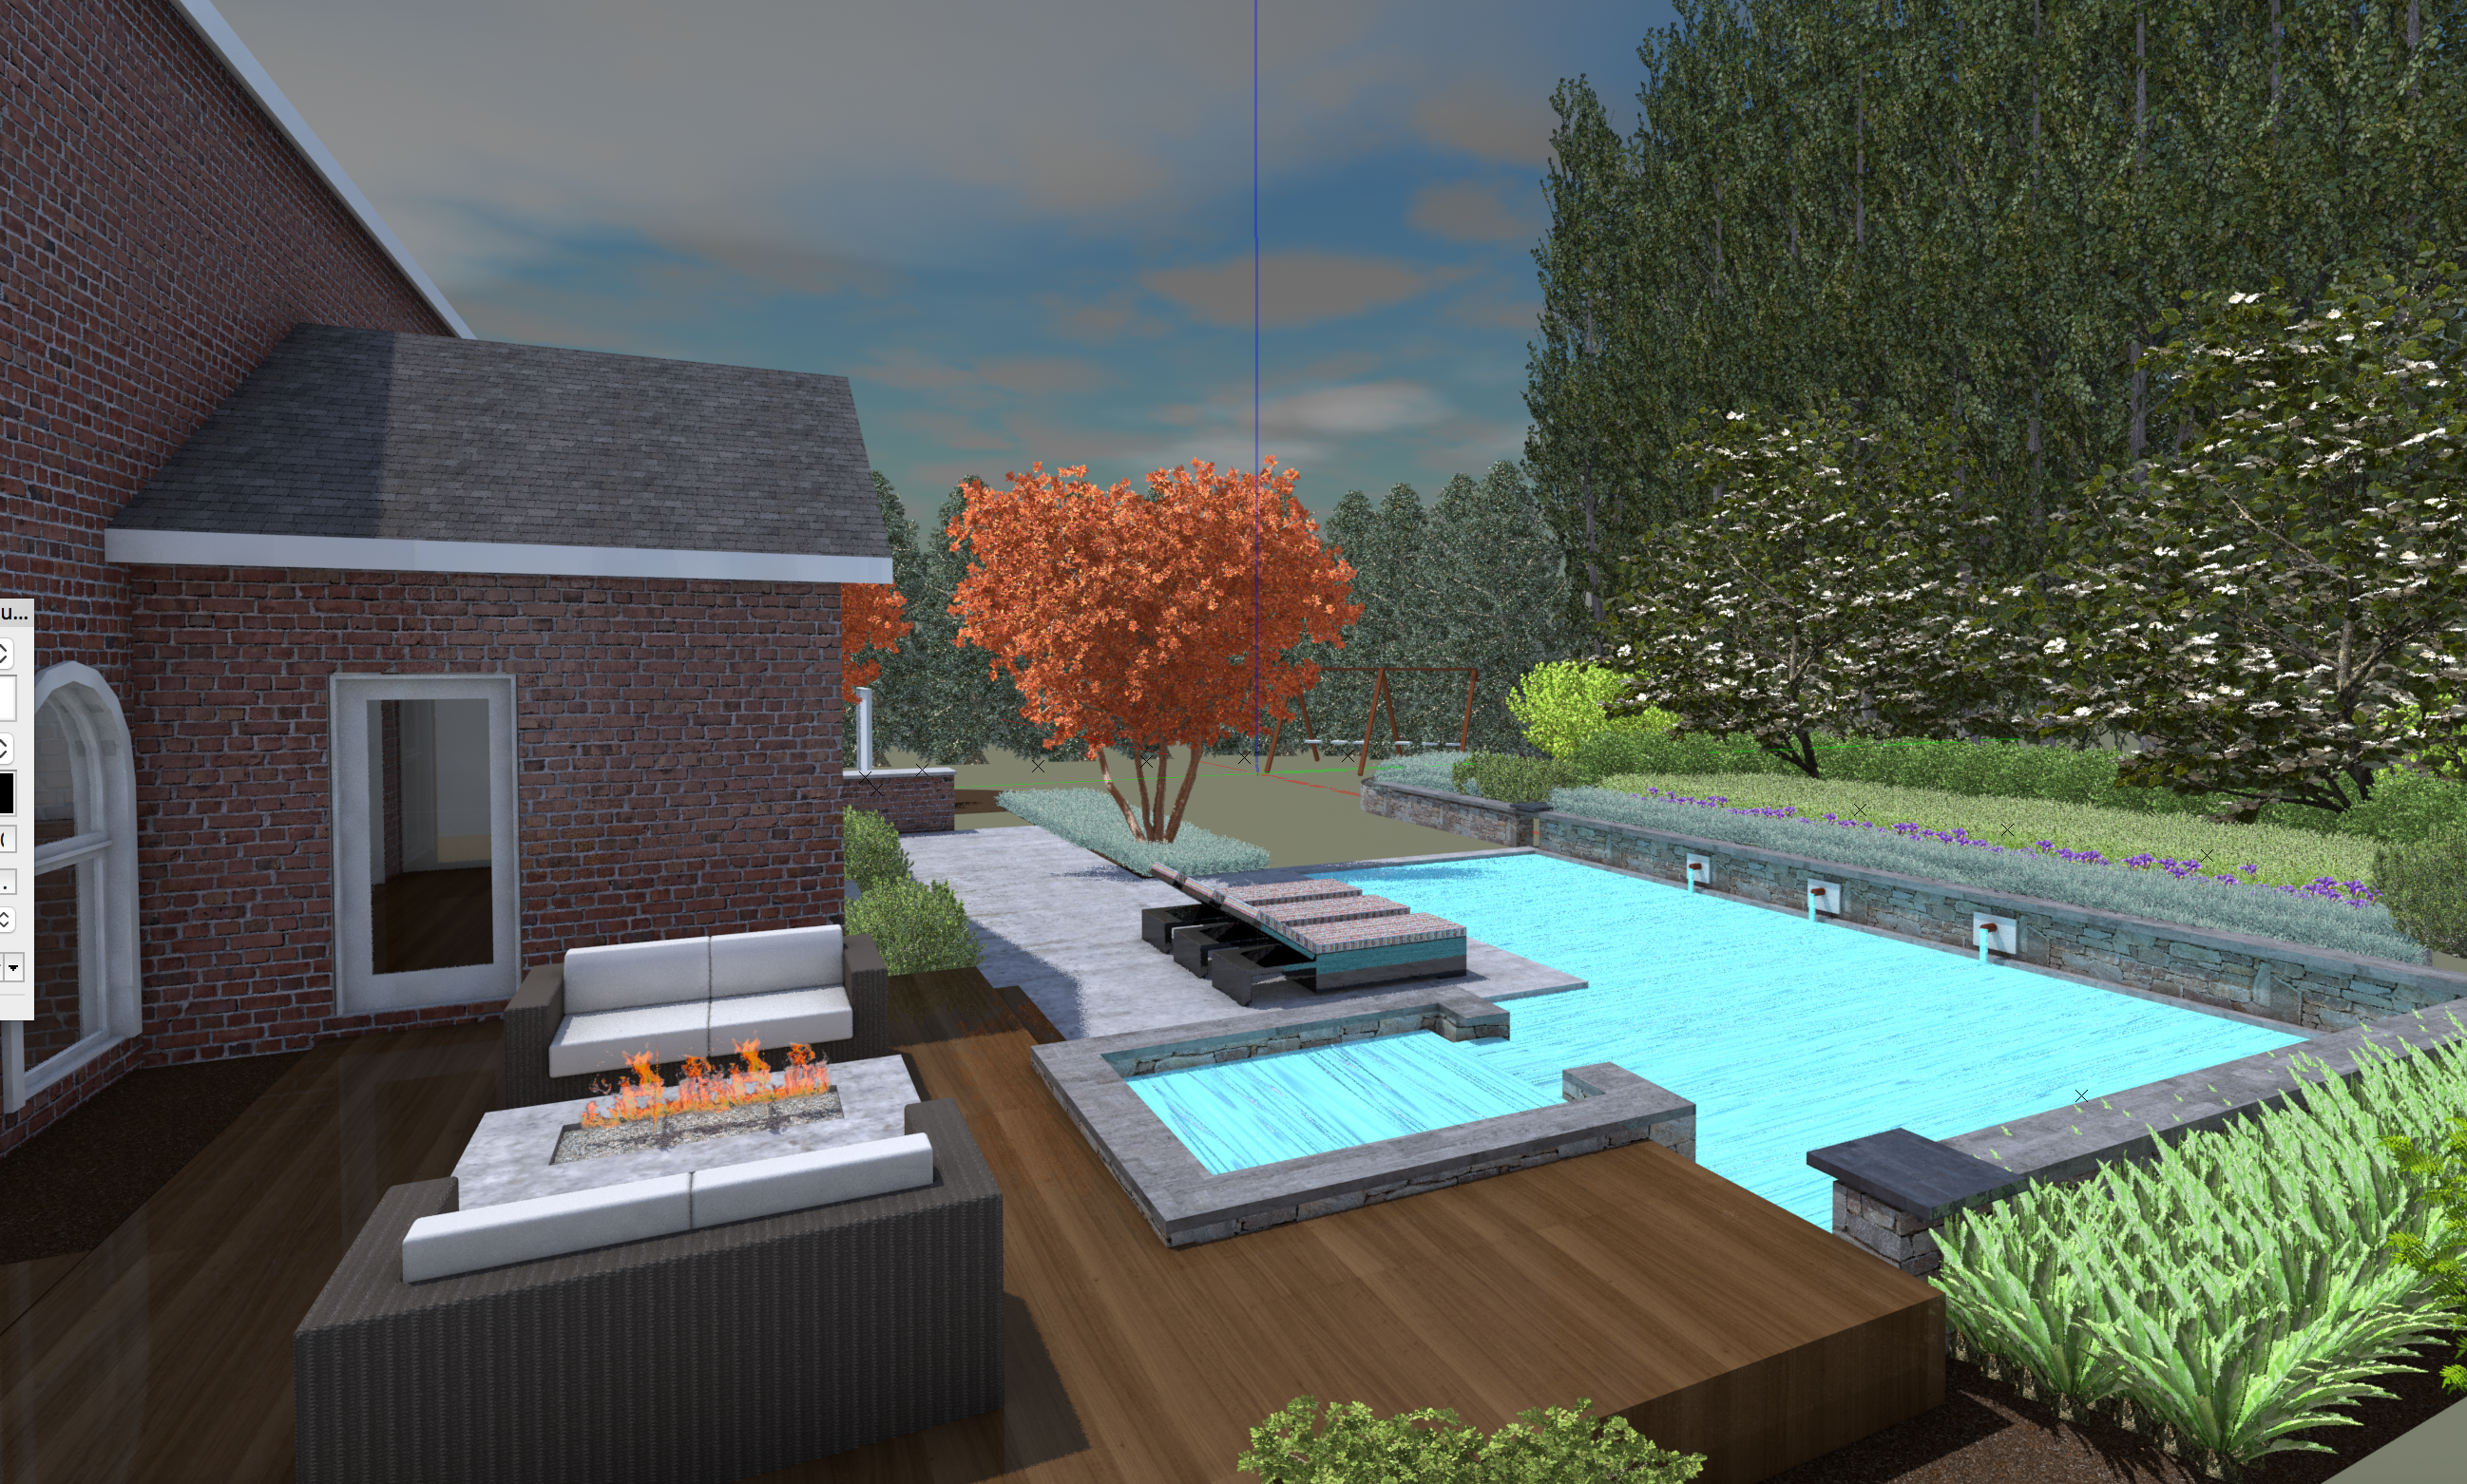 3D Pool Deck Design